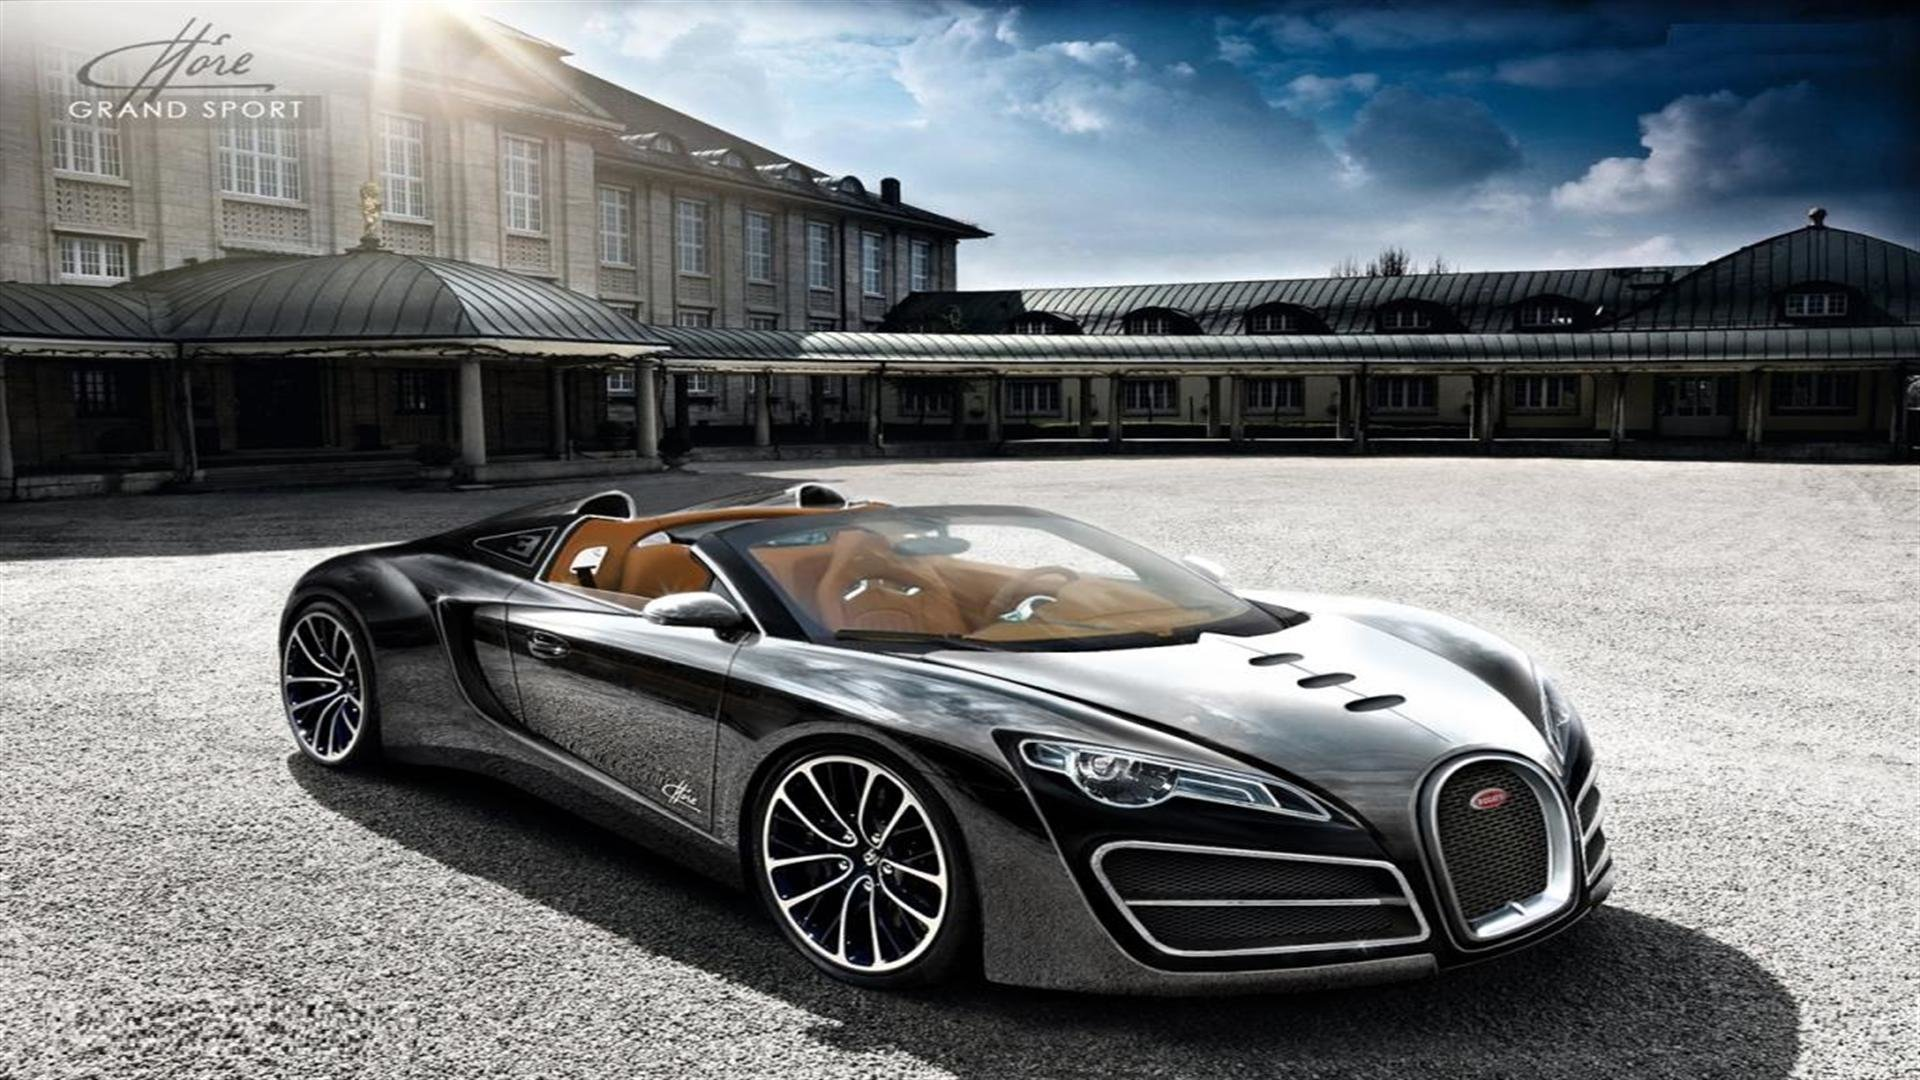 Latest Bugatti Veyron Wallpapers And High Resolution Hd Pictures Free Download